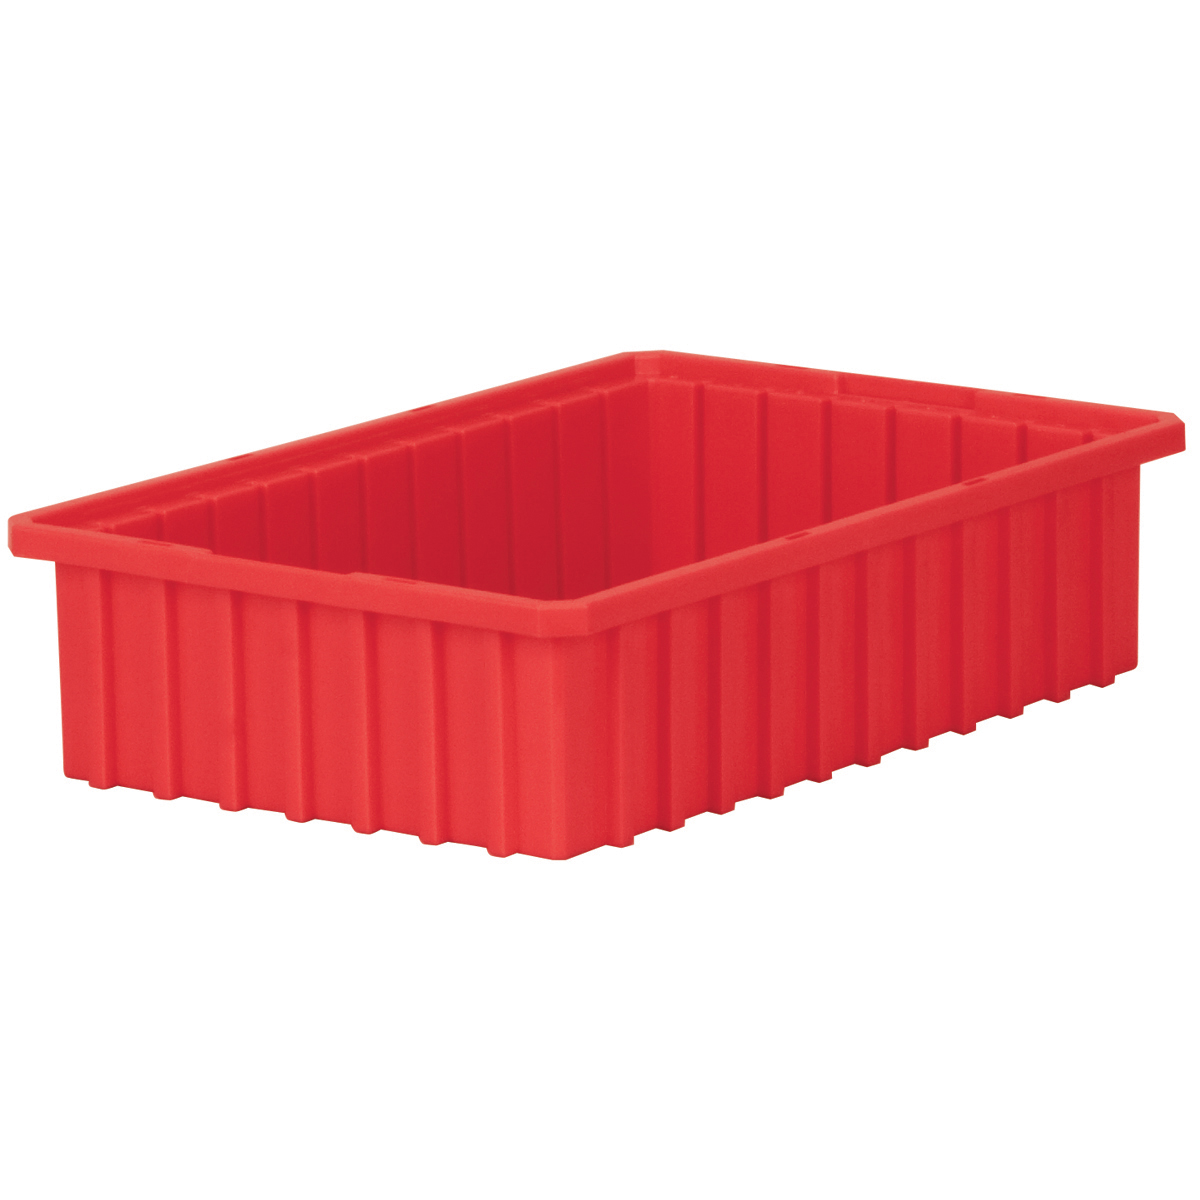 Akro-Grid Dividable Box 16-1/2 x 10-7/8 x 4, Red (33164RED).  This item sold in carton quantities of 12.